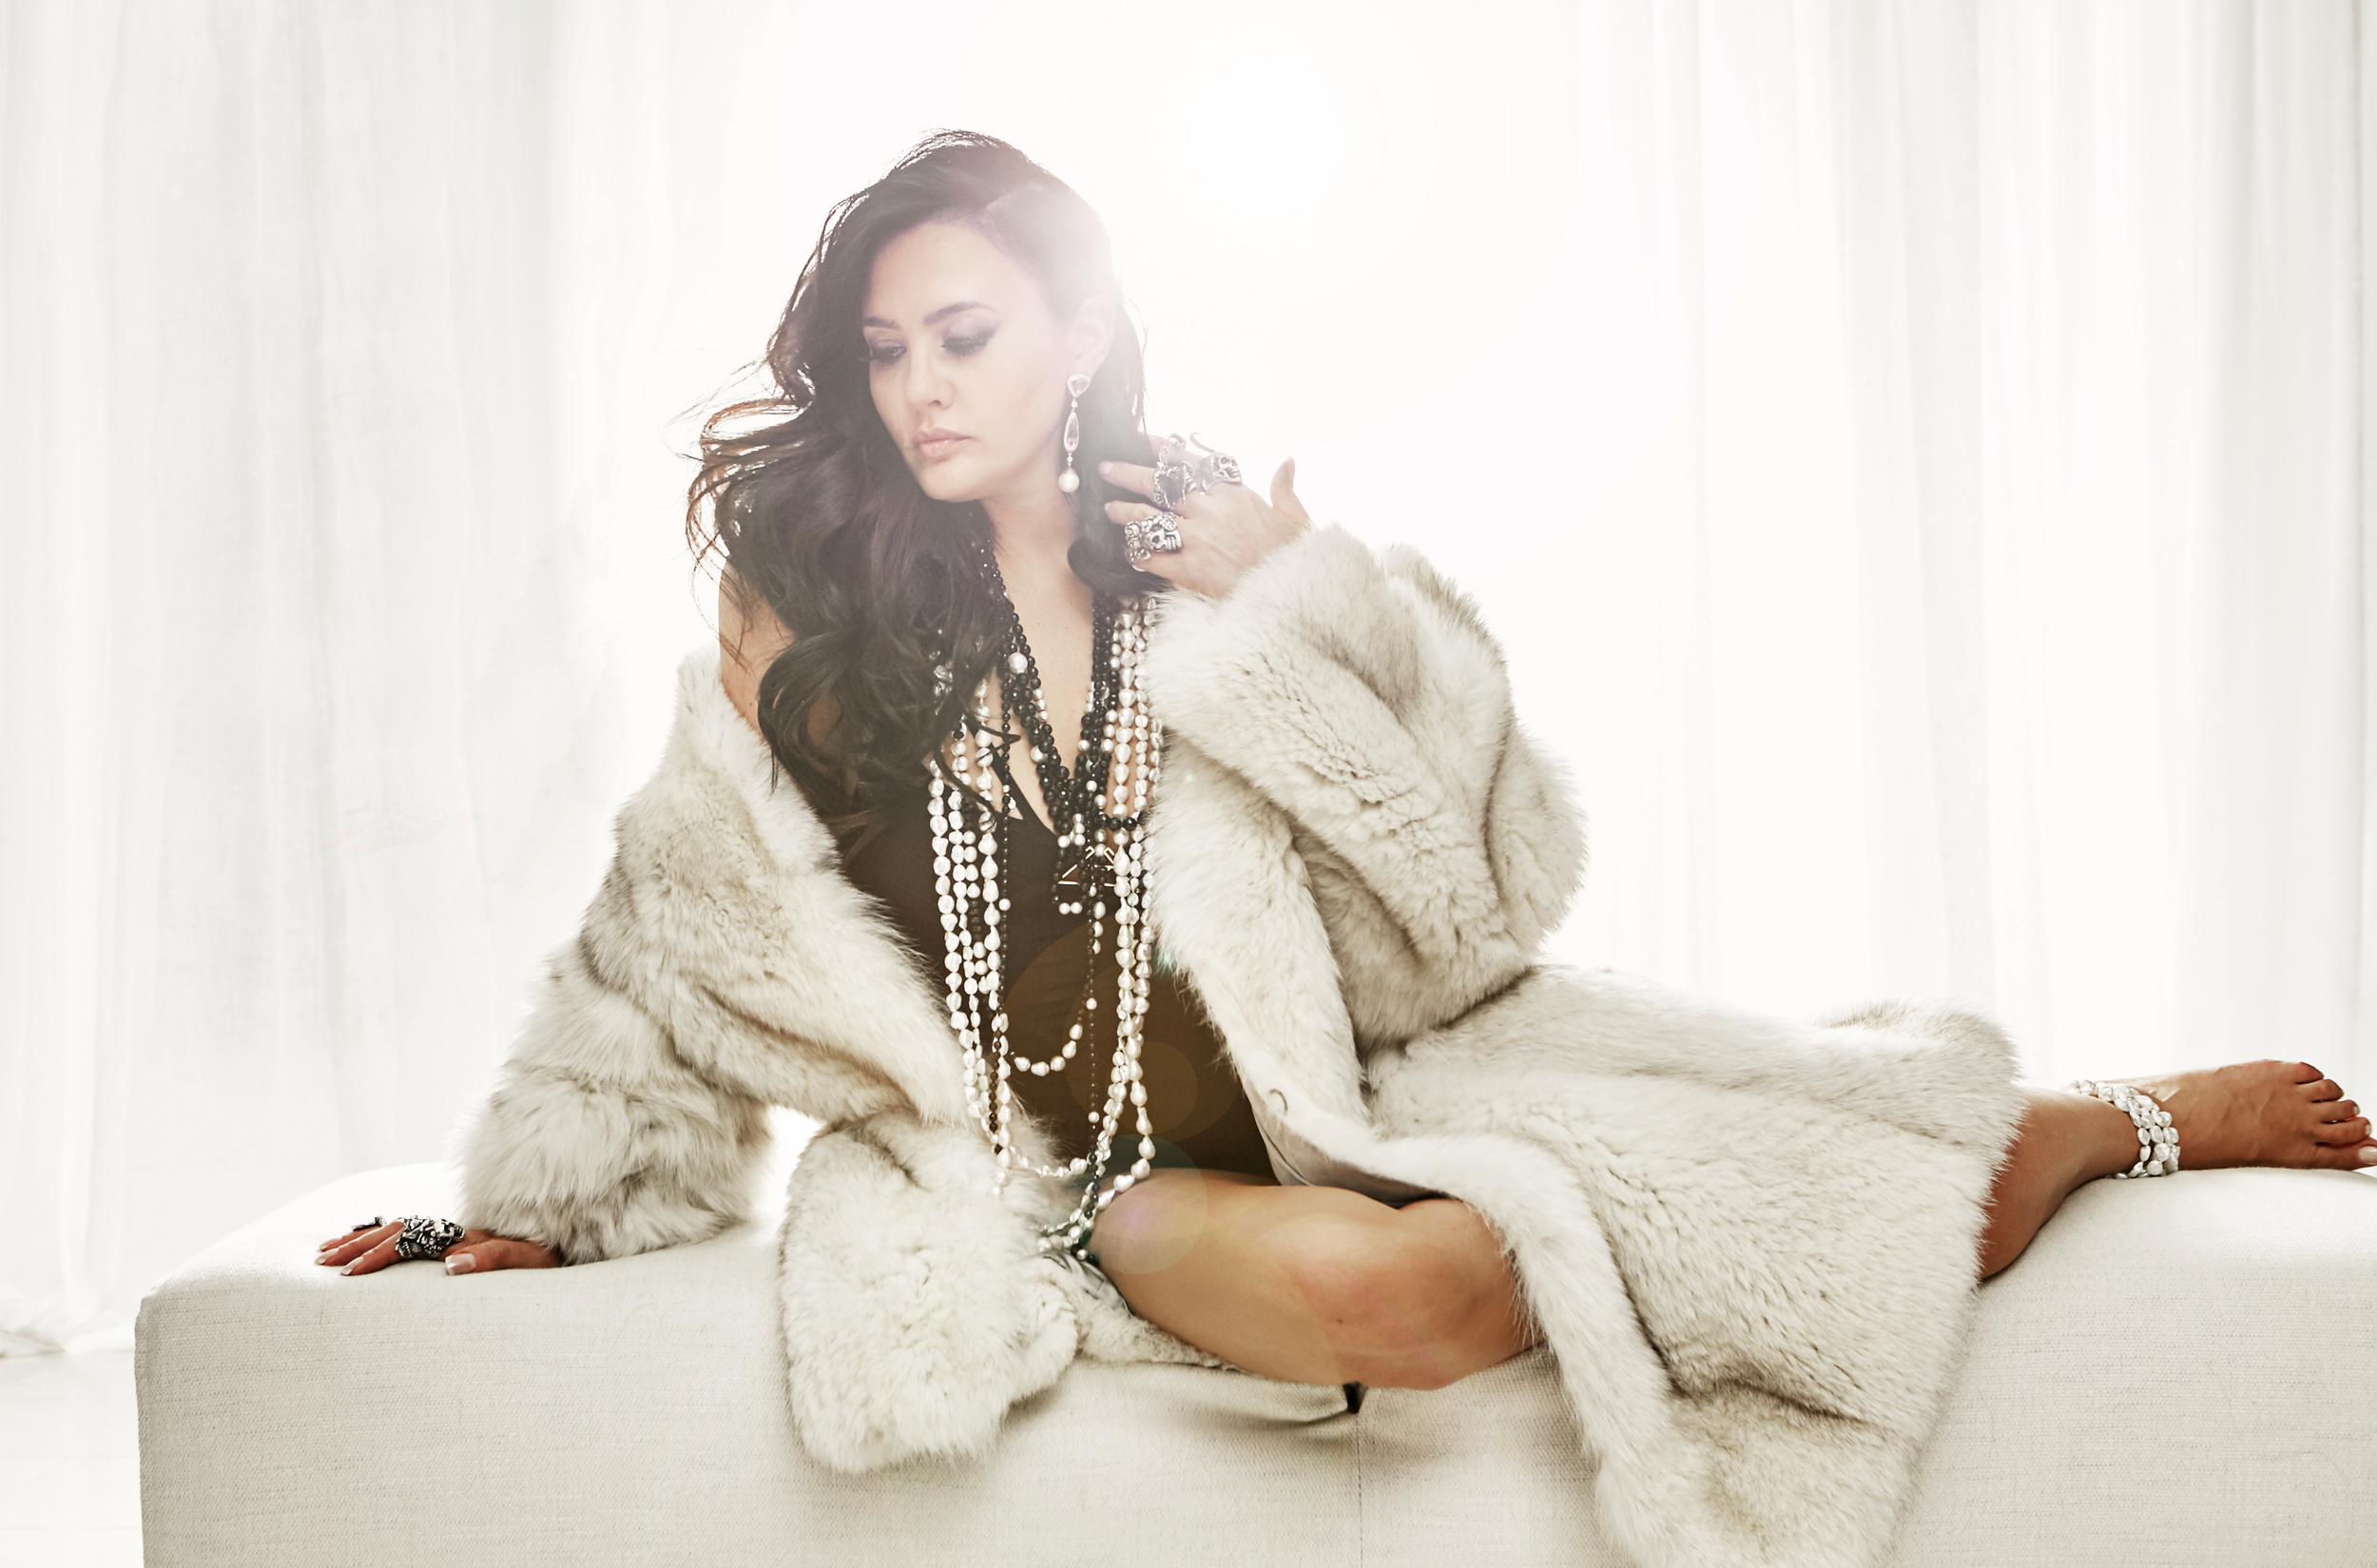 Heart of Bone Rings, Anton Necklaces and Earrings, Faux Fur Jacket and Herve Leger Bodysuit